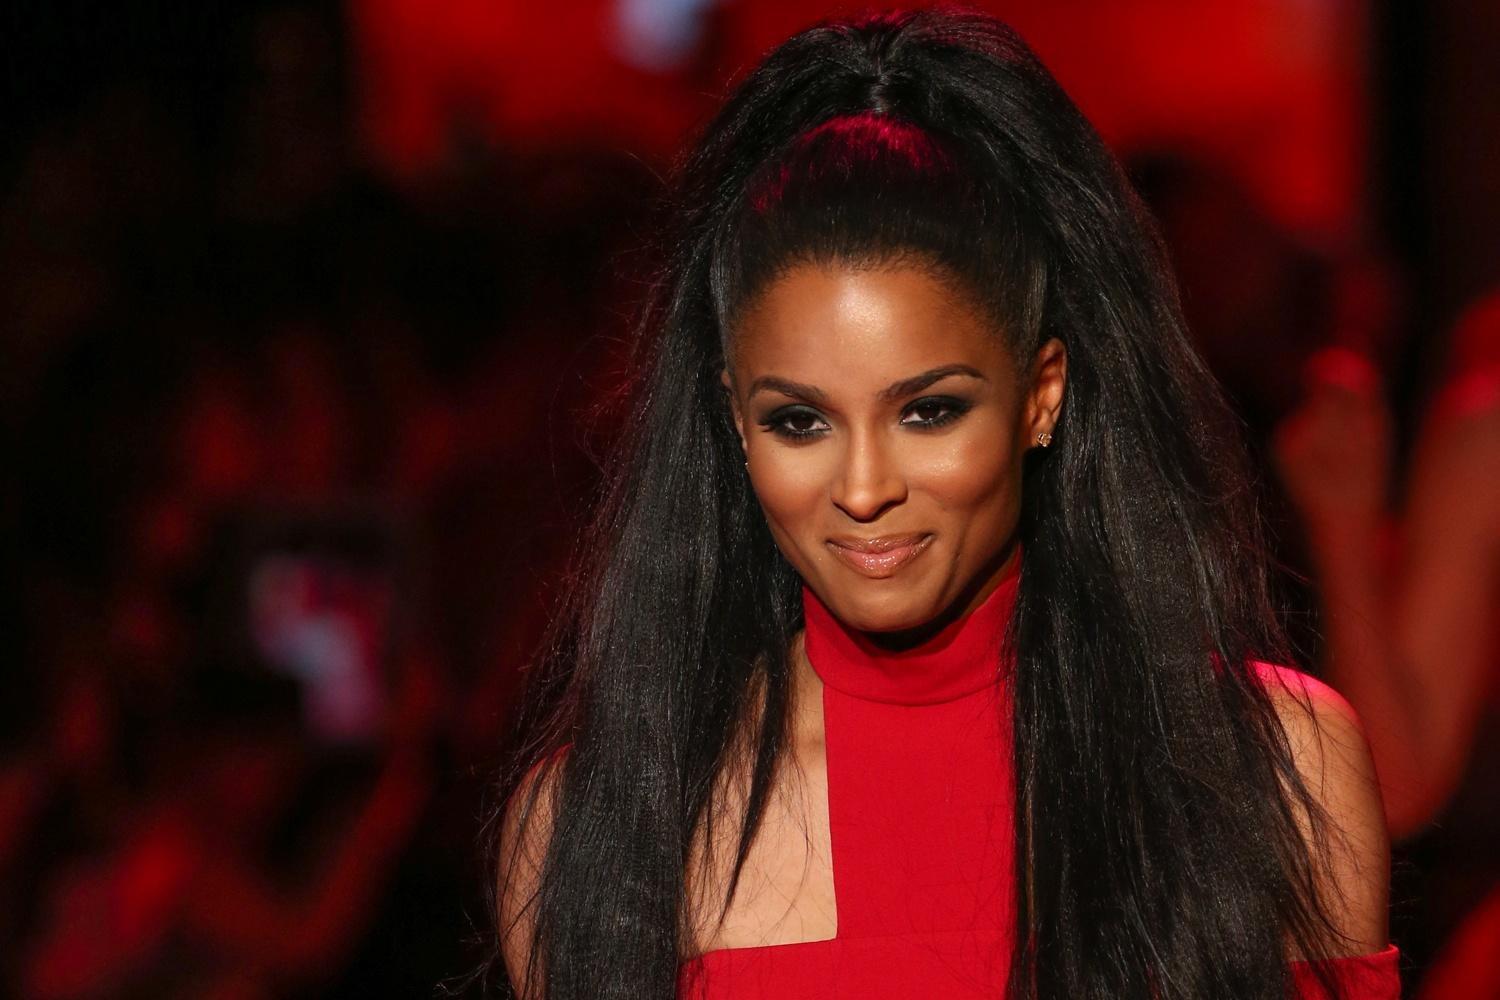 Musician Ciara sues ex-fiance for $15 million over allegedly libelous tweets